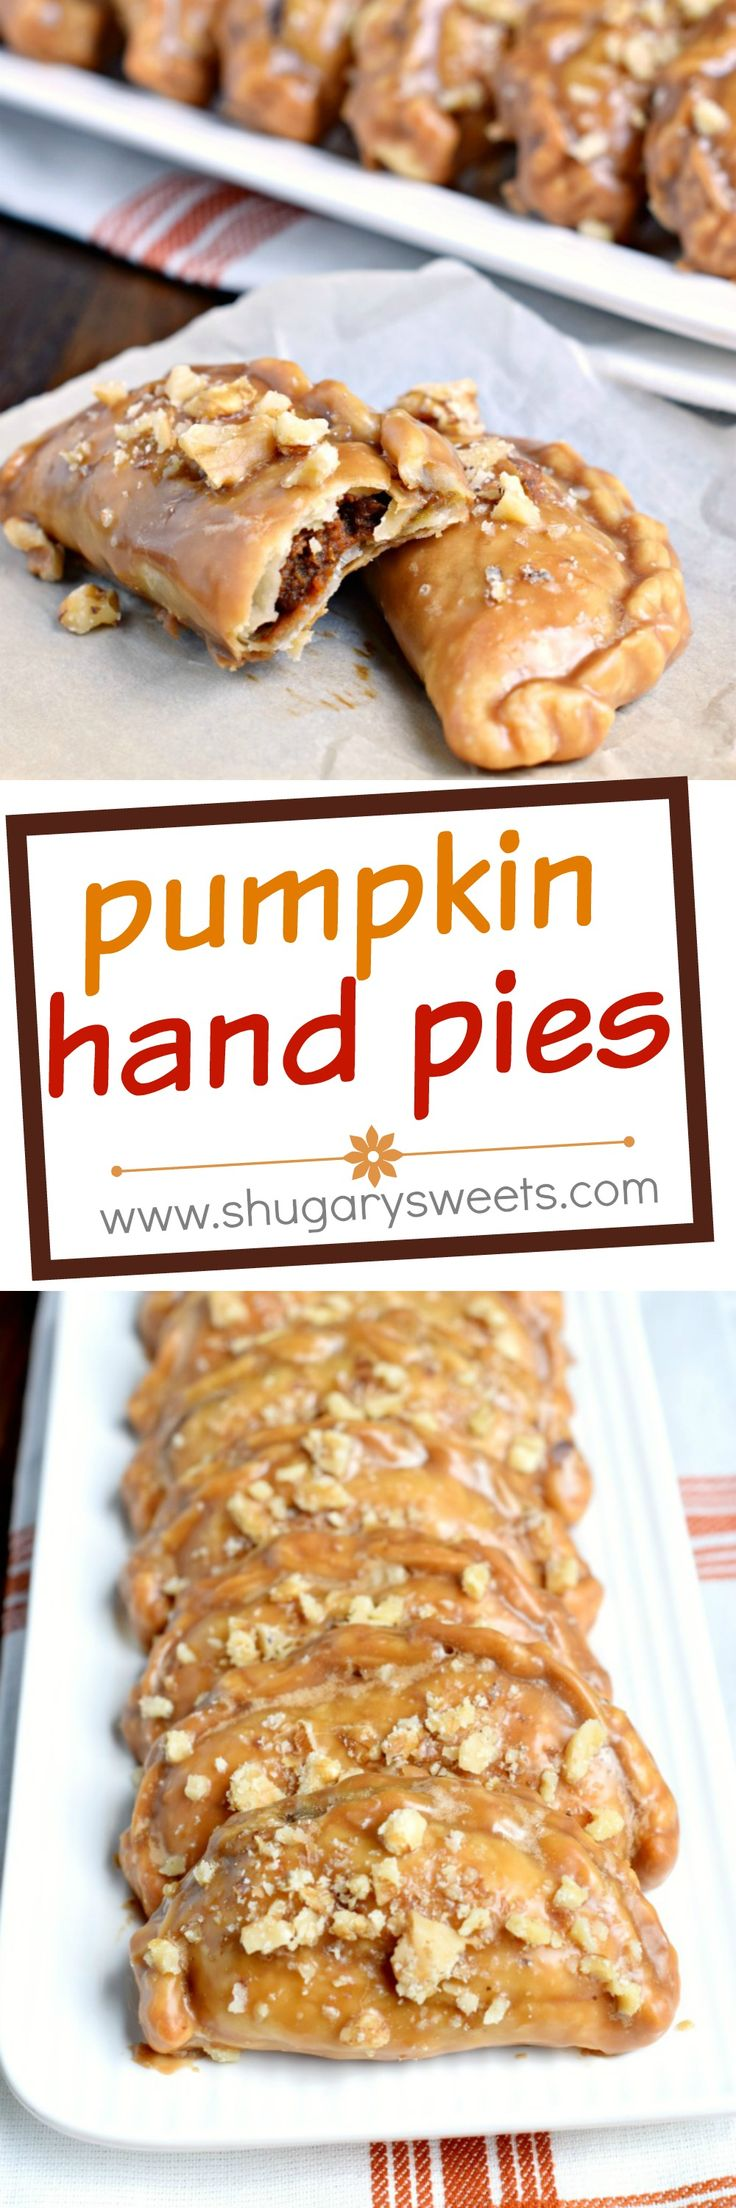 These Pumpkin Hand Pies are the perfect fall treat! The flaky crust and nutty pumpkin pie filling are perfect! #fisherunshelled #ad